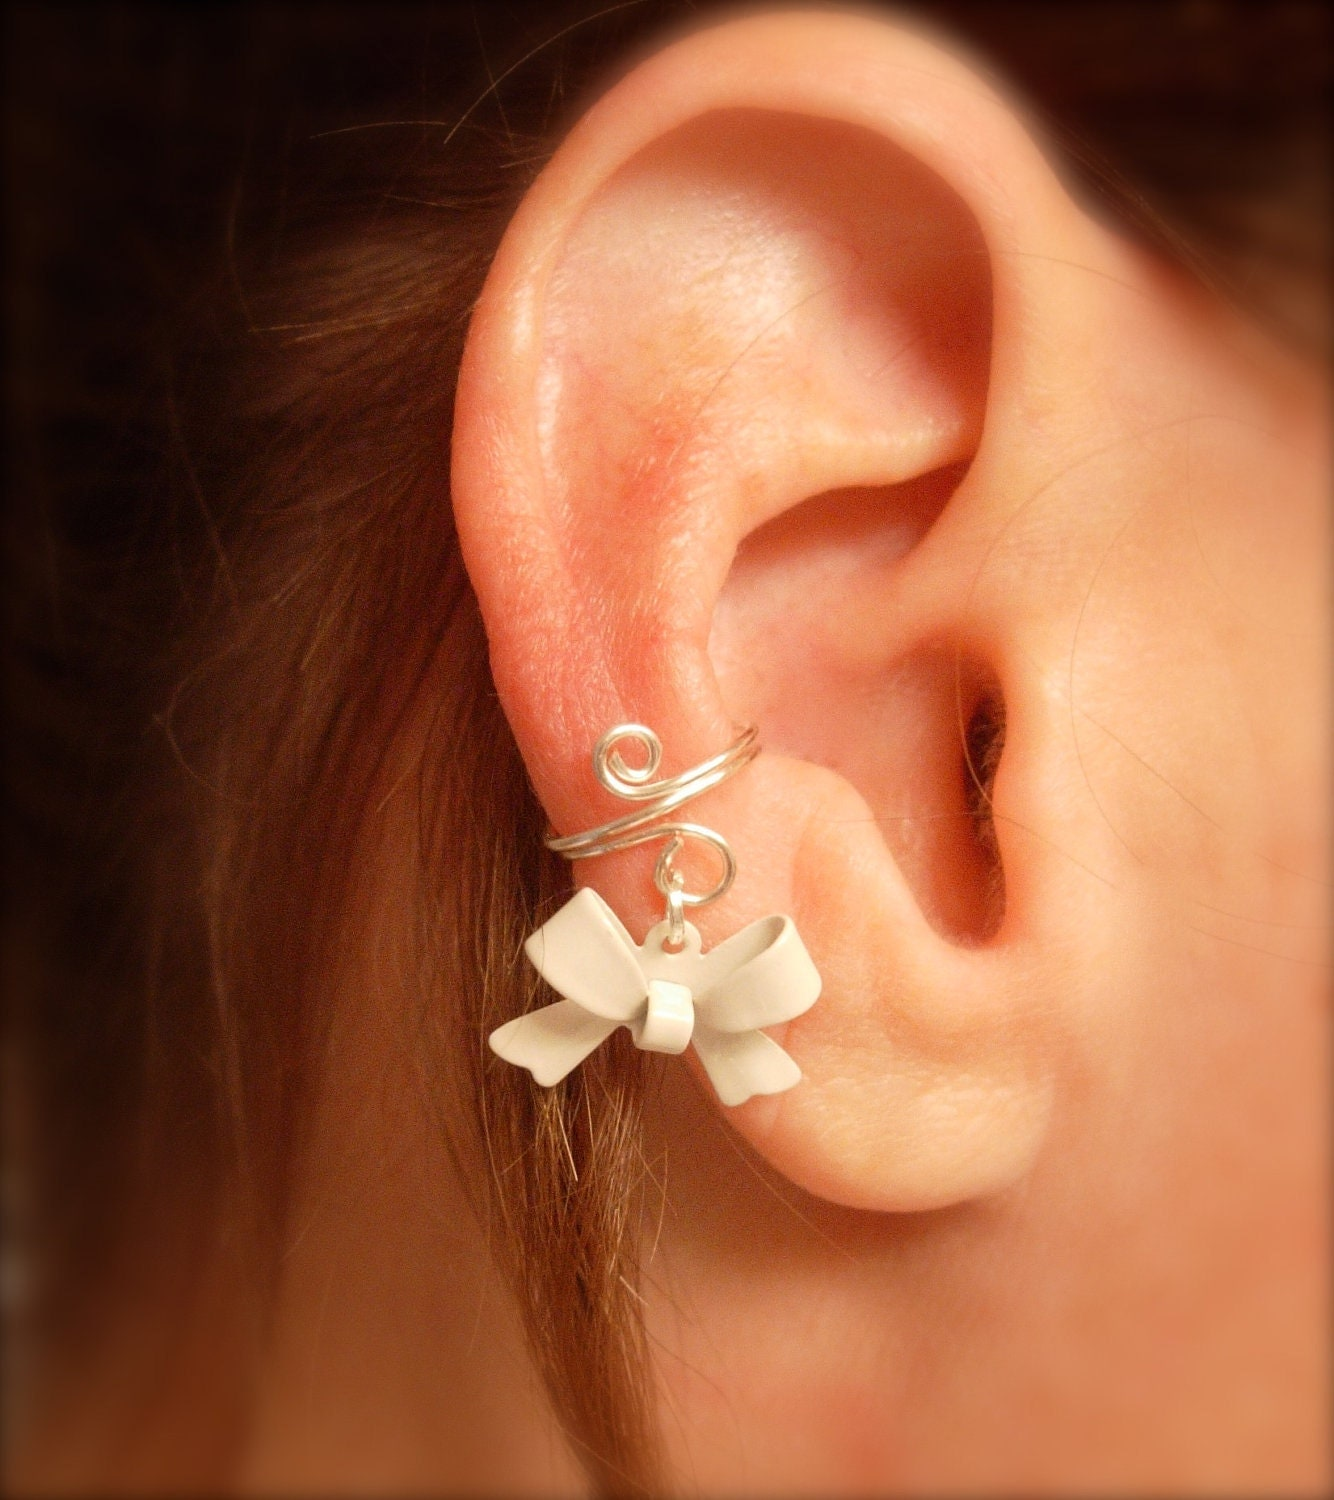 ear cuff dainty and feminine silver cuff with white bow charm. Black Bedroom Furniture Sets. Home Design Ideas